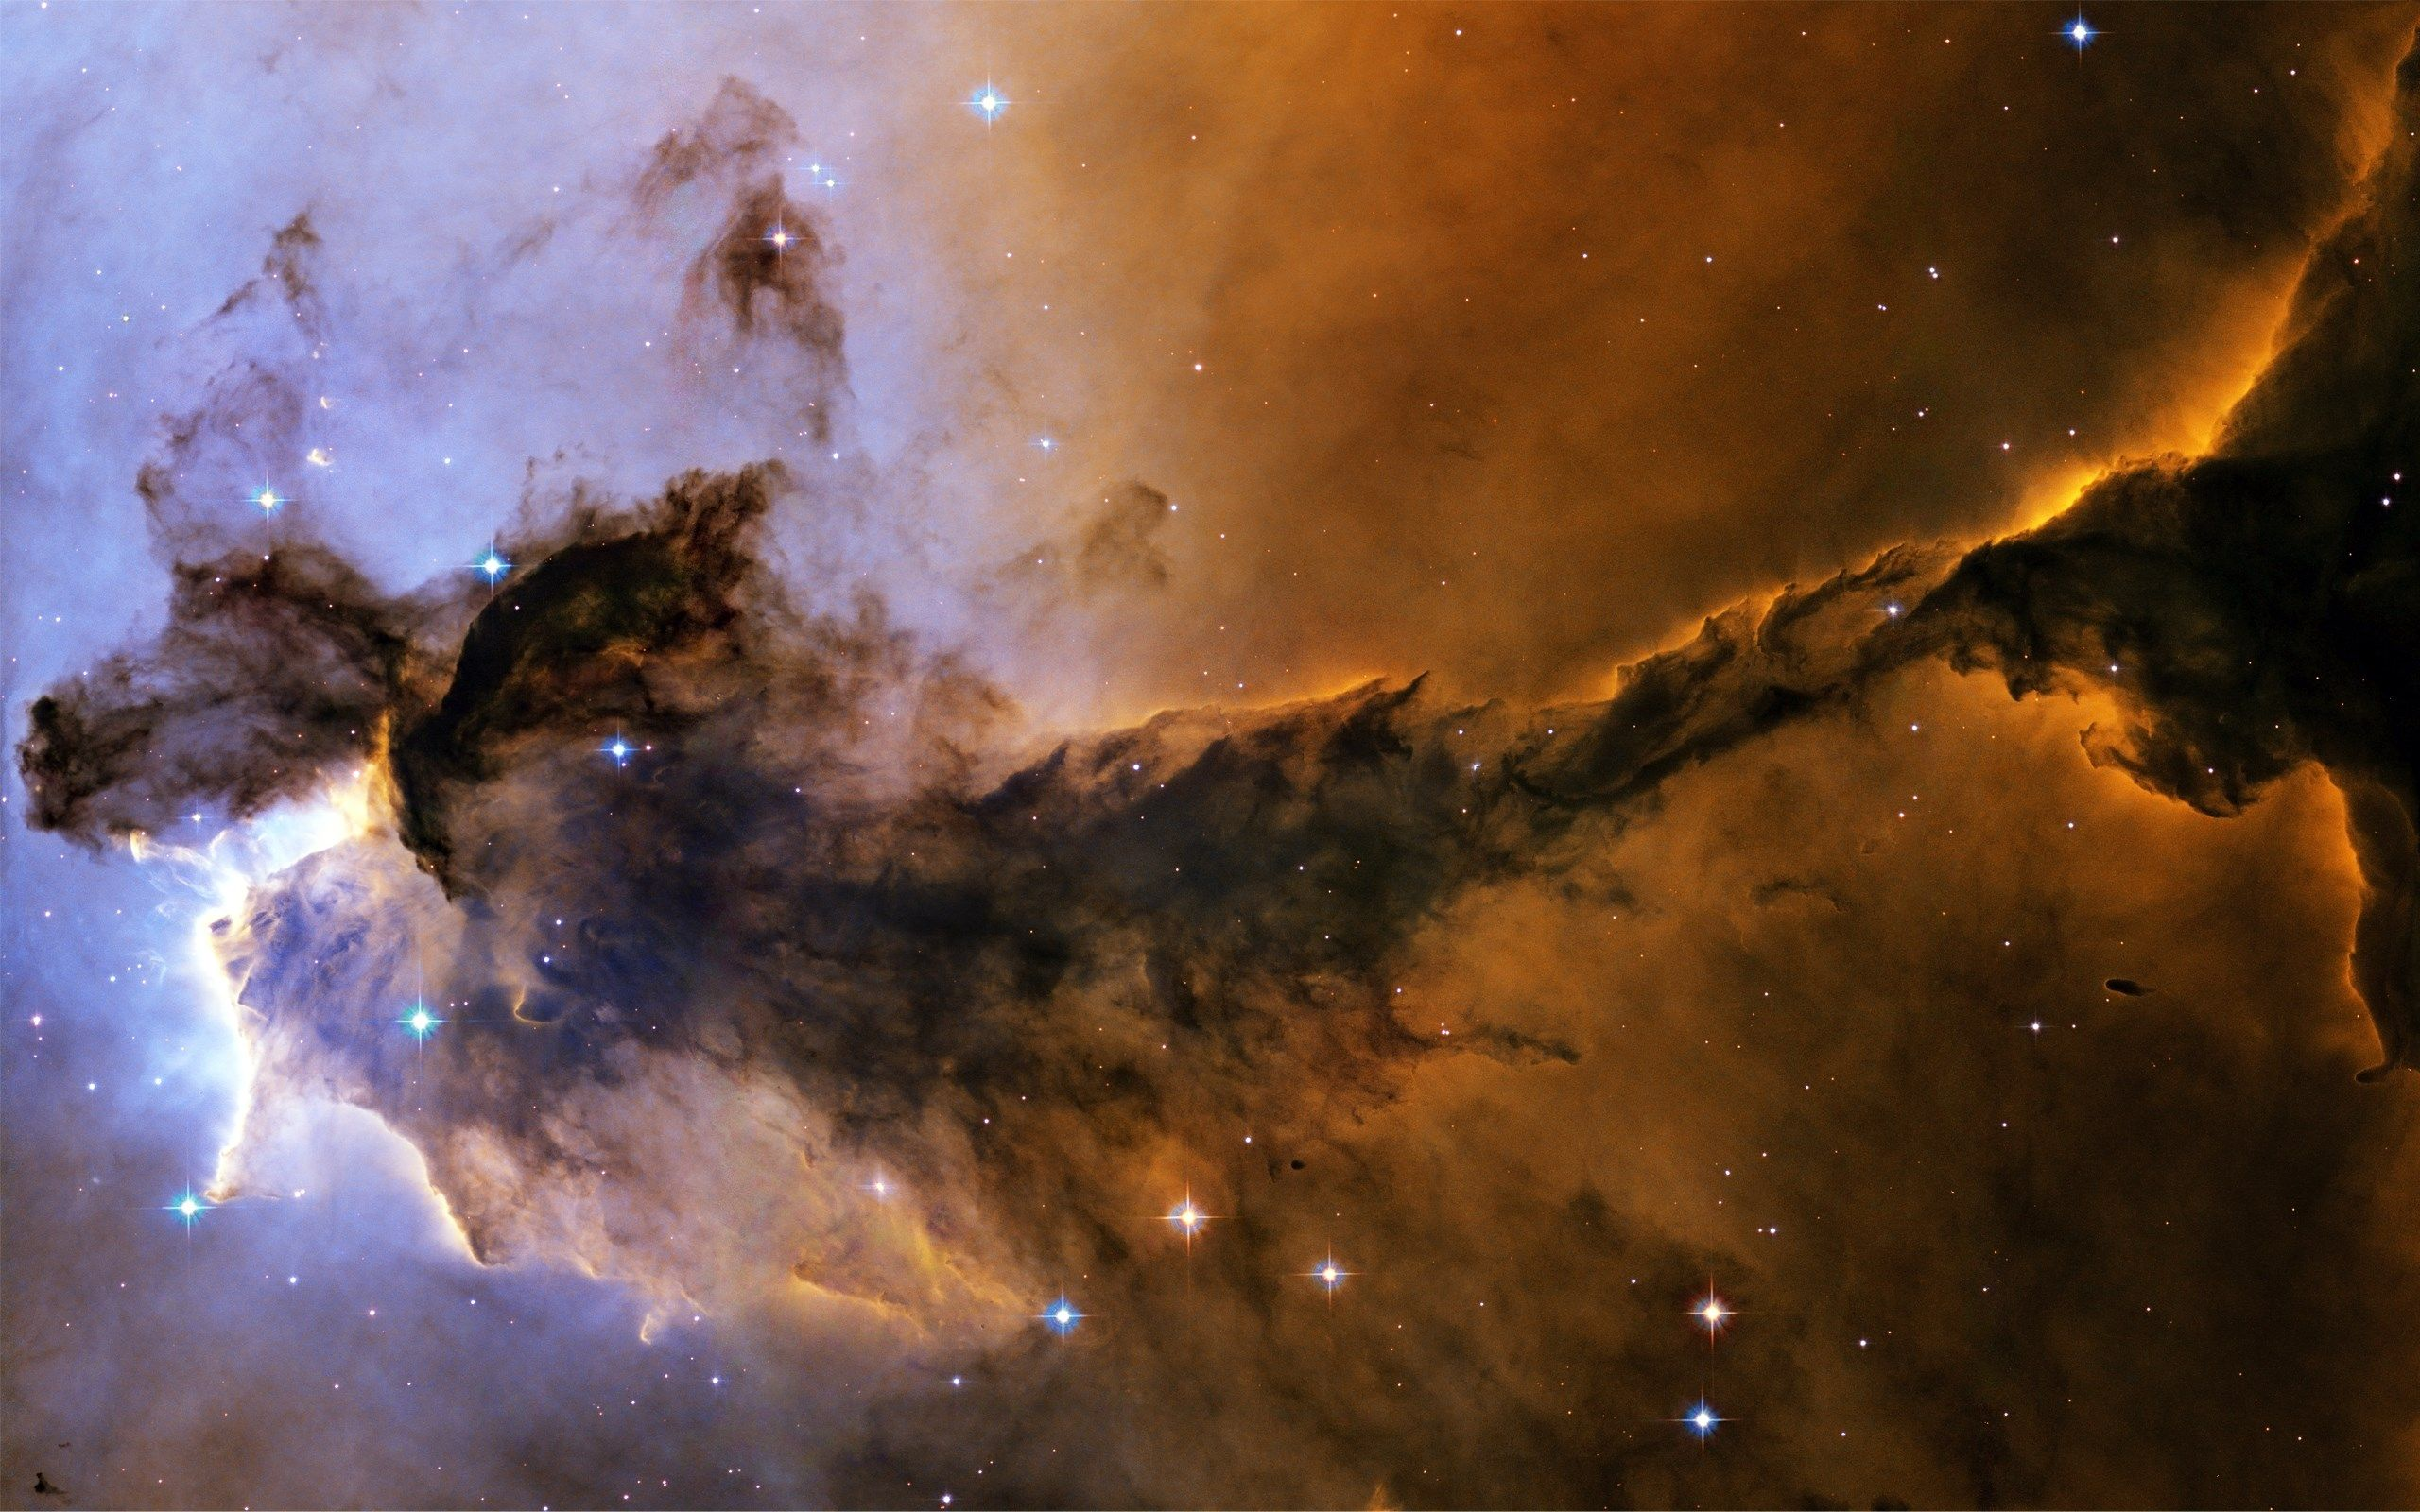 Download Wallpaper Horse Nebula - 1aede38d510702dc3f4c6235260fdf71  Perfect Image Reference_7937.jpg